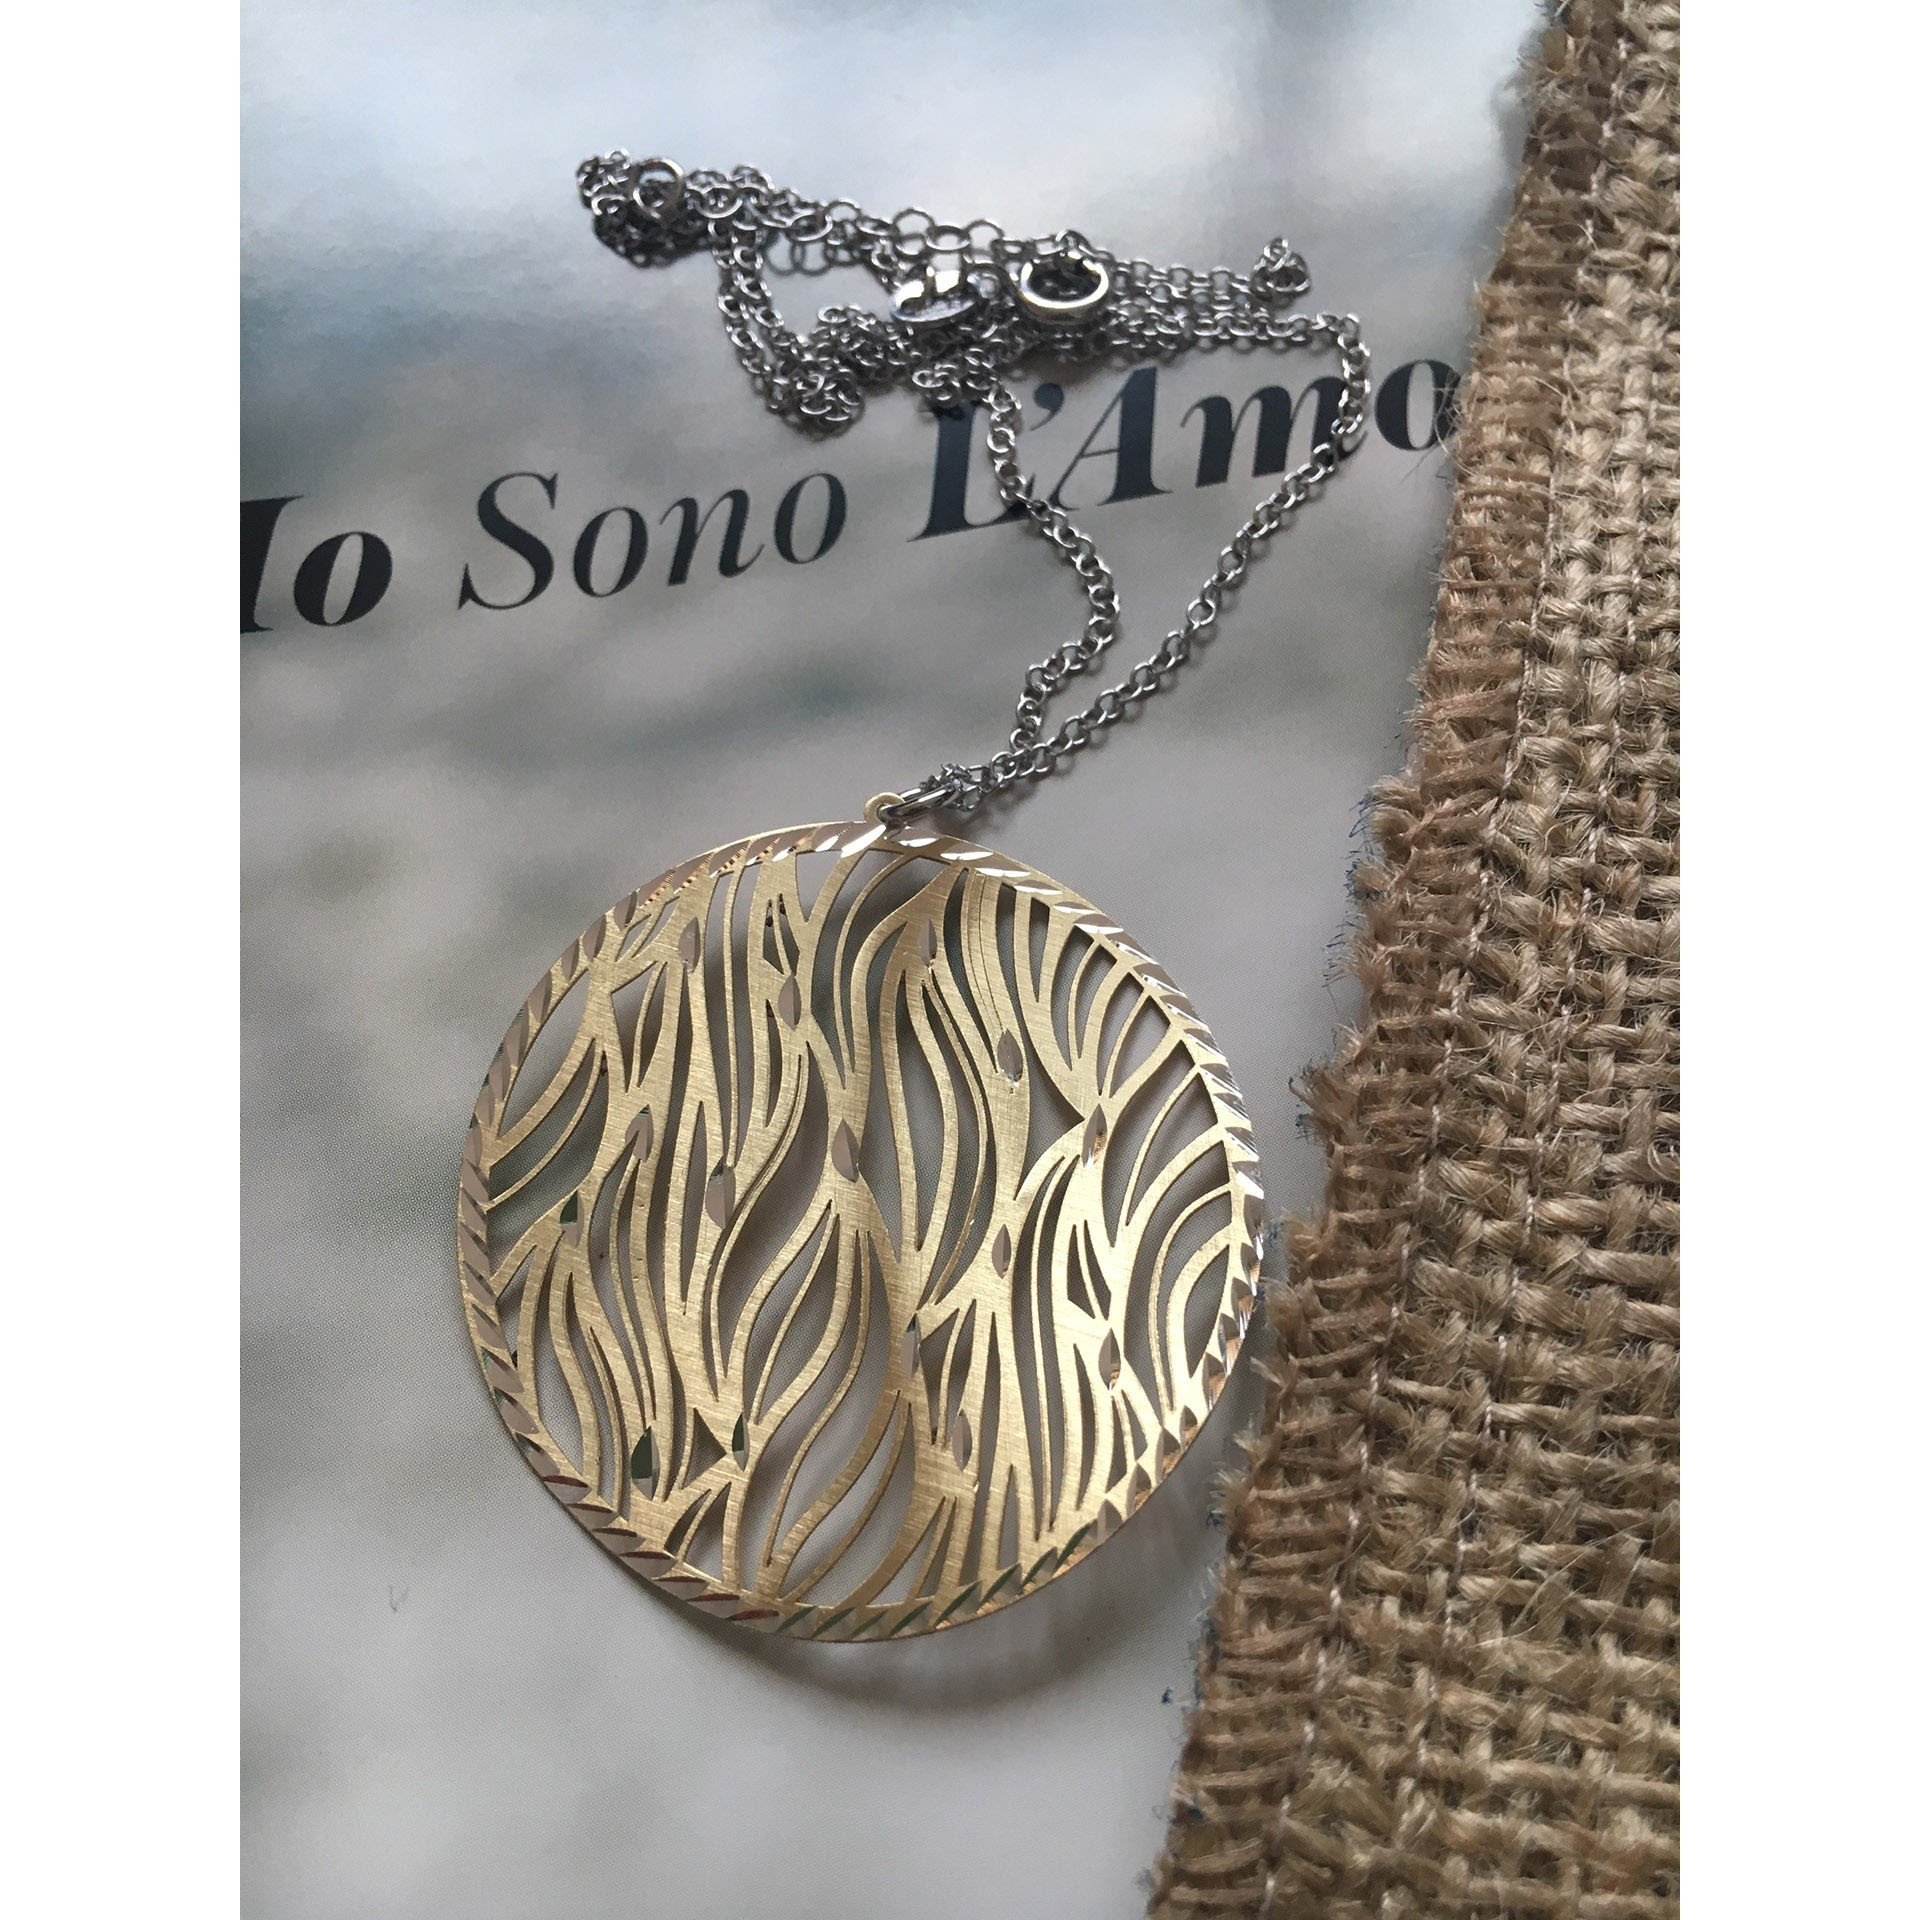 The Zebra in Gold silver necklace